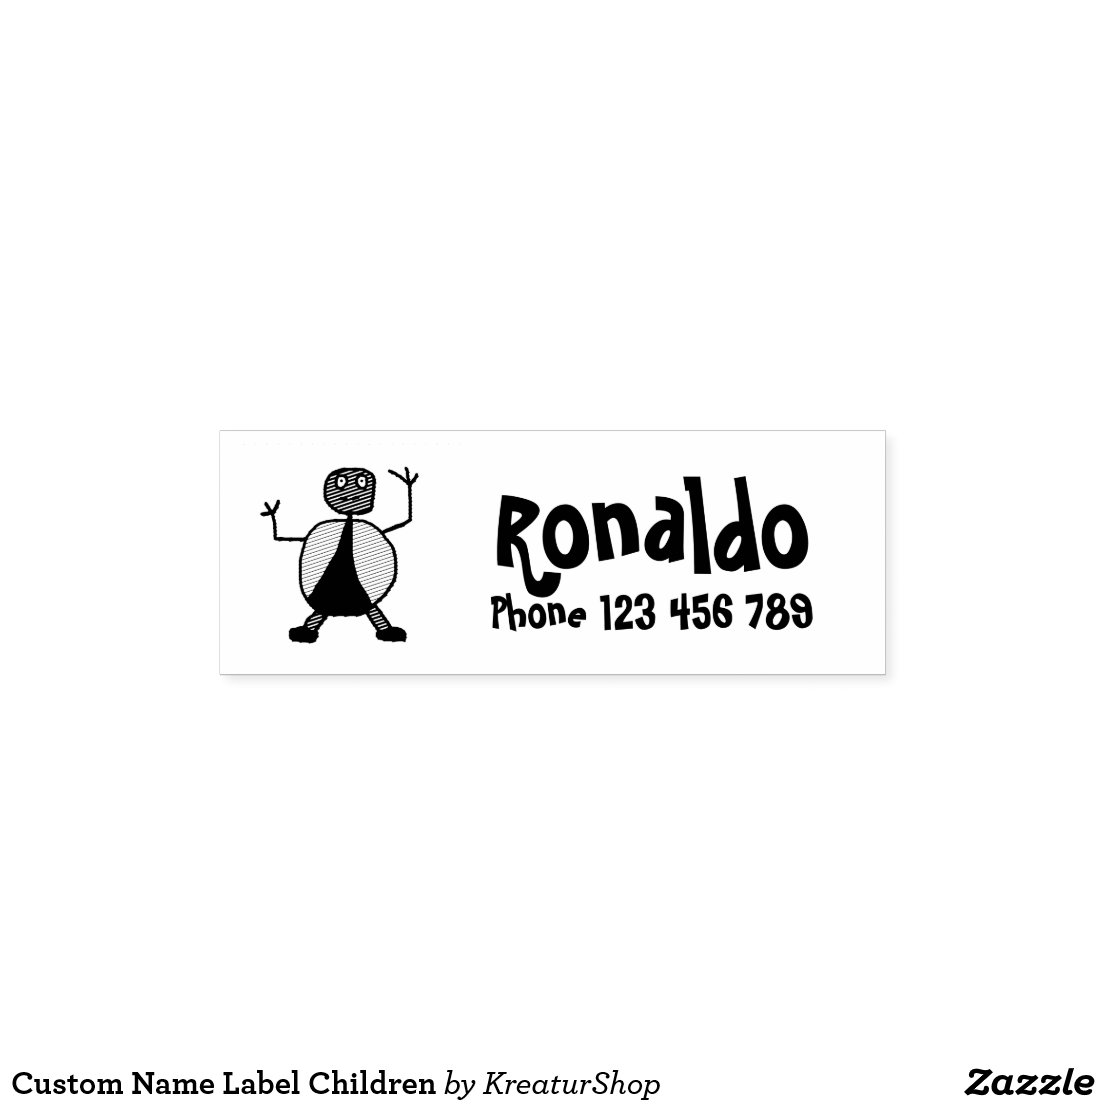 Custom Name Label Children